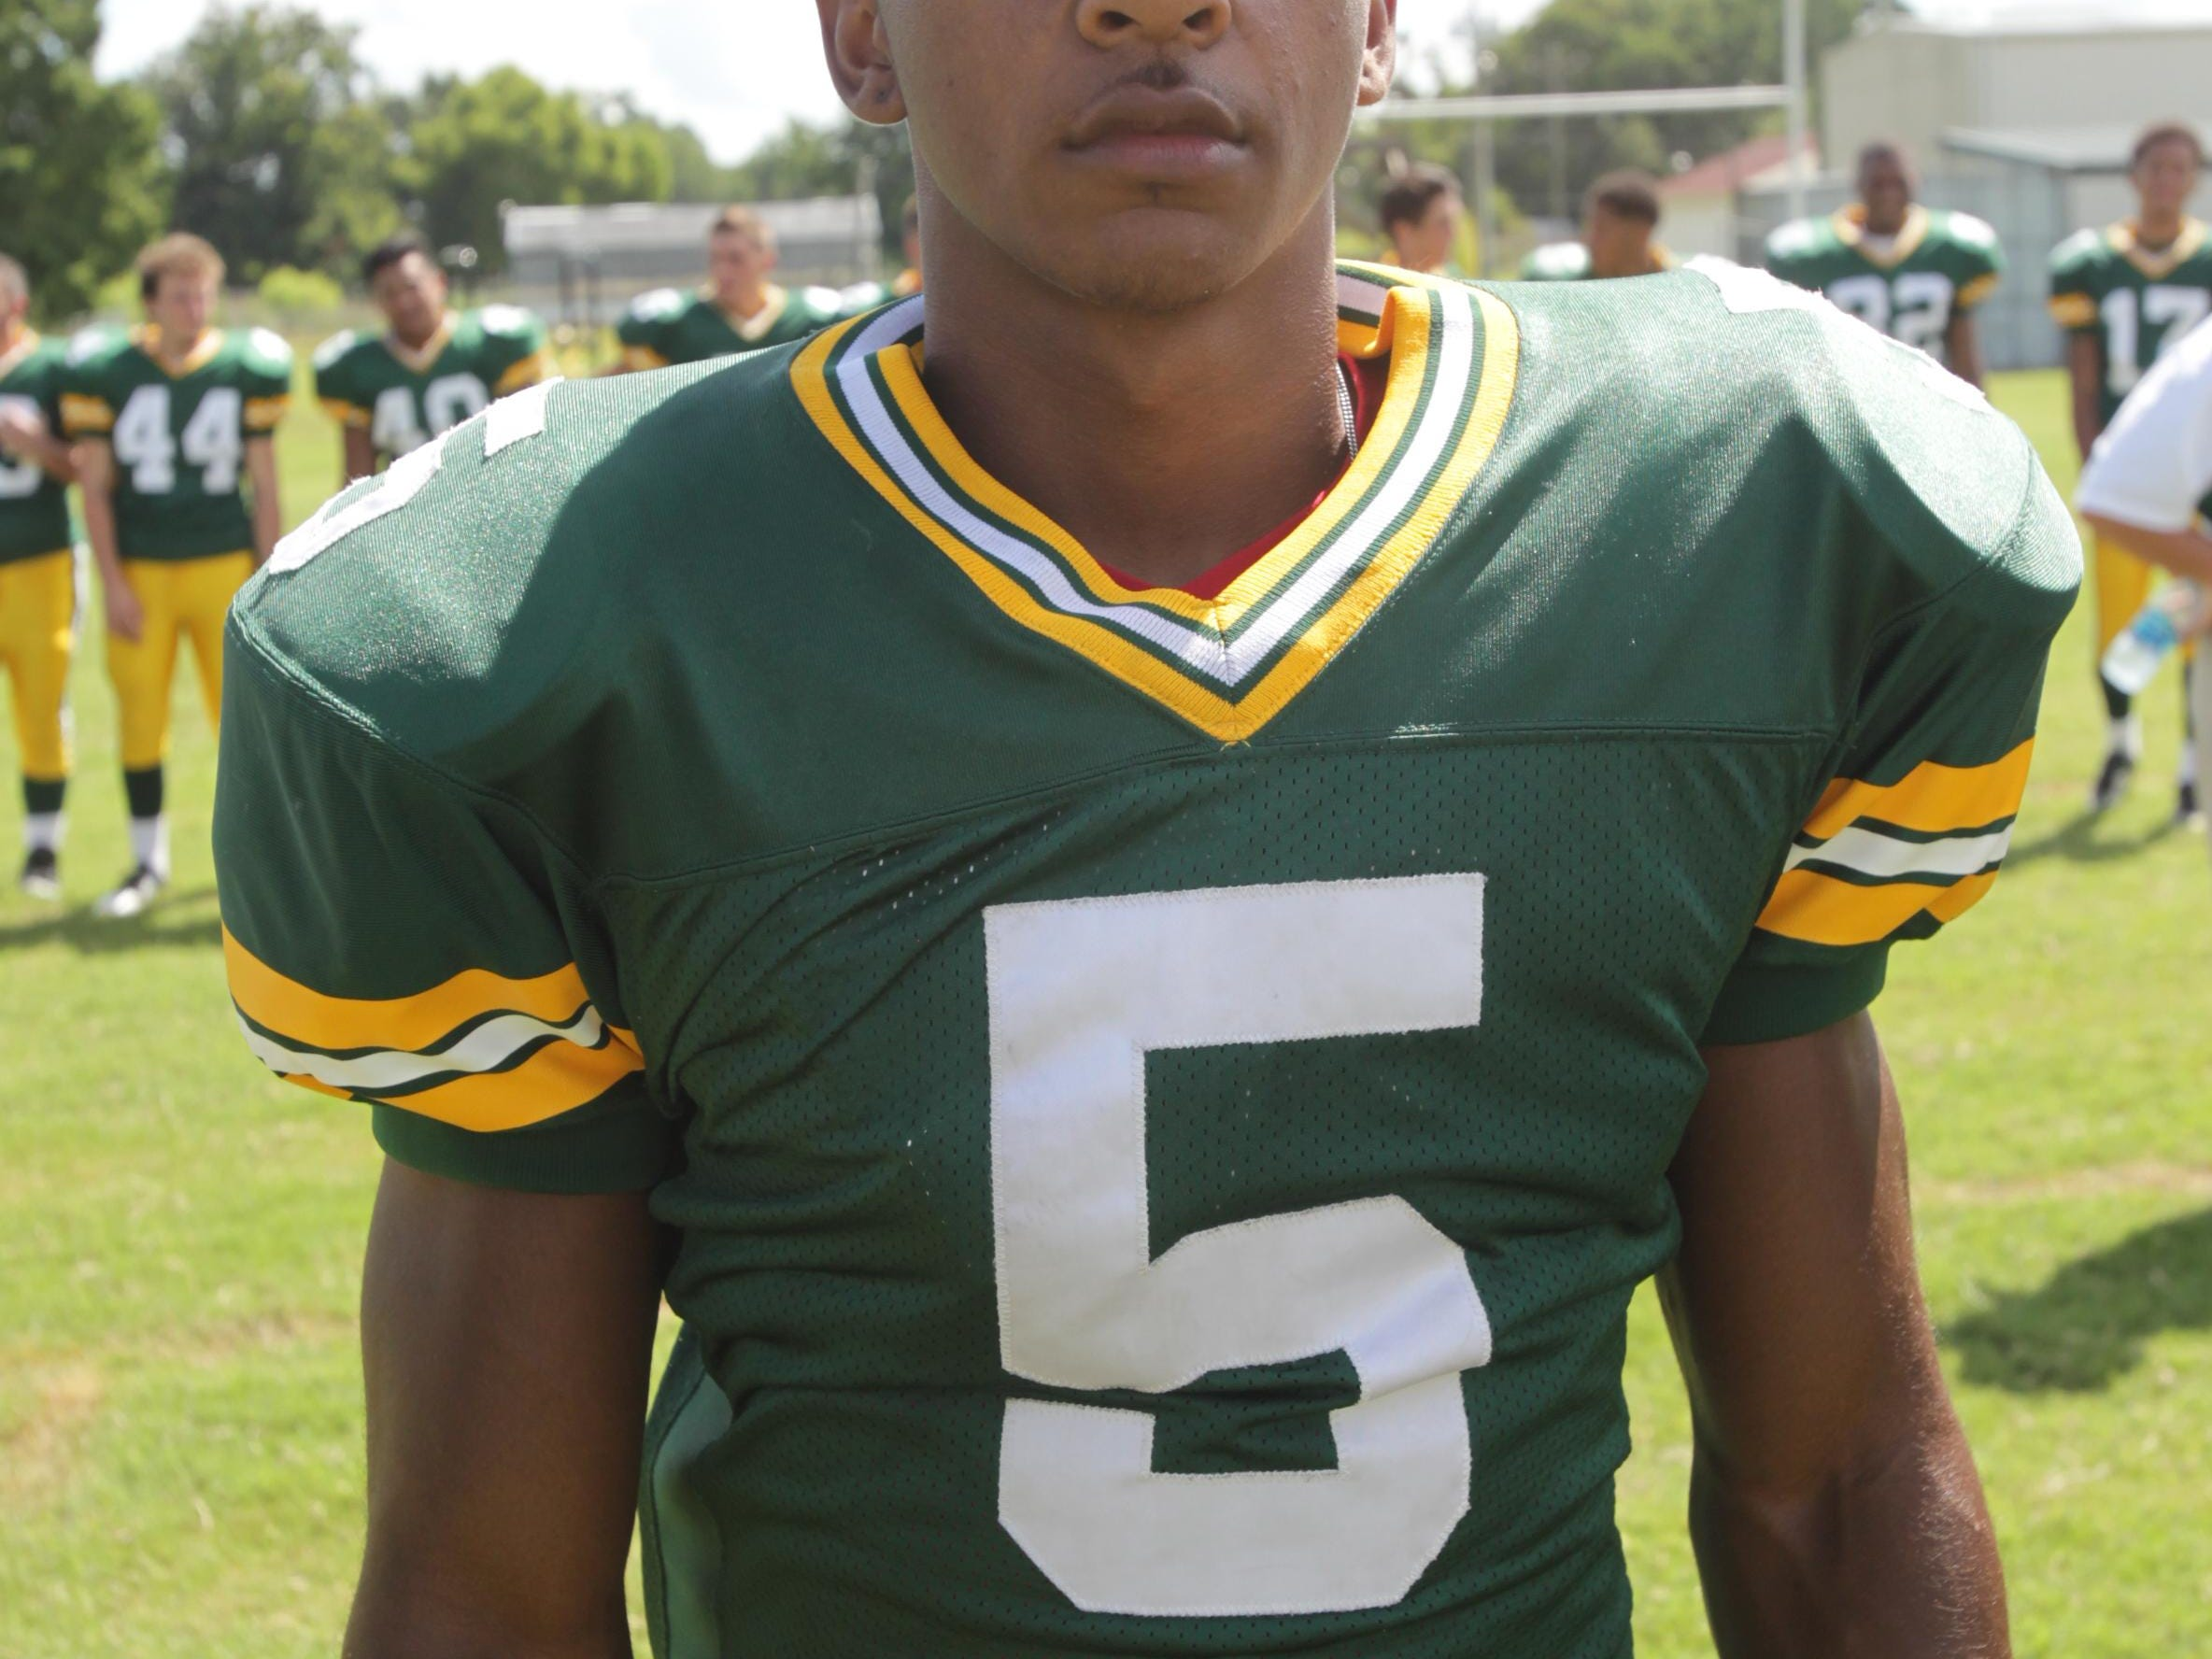 Cecilia running back Raymond Calais will play a big role in the Bulldogs success this season.